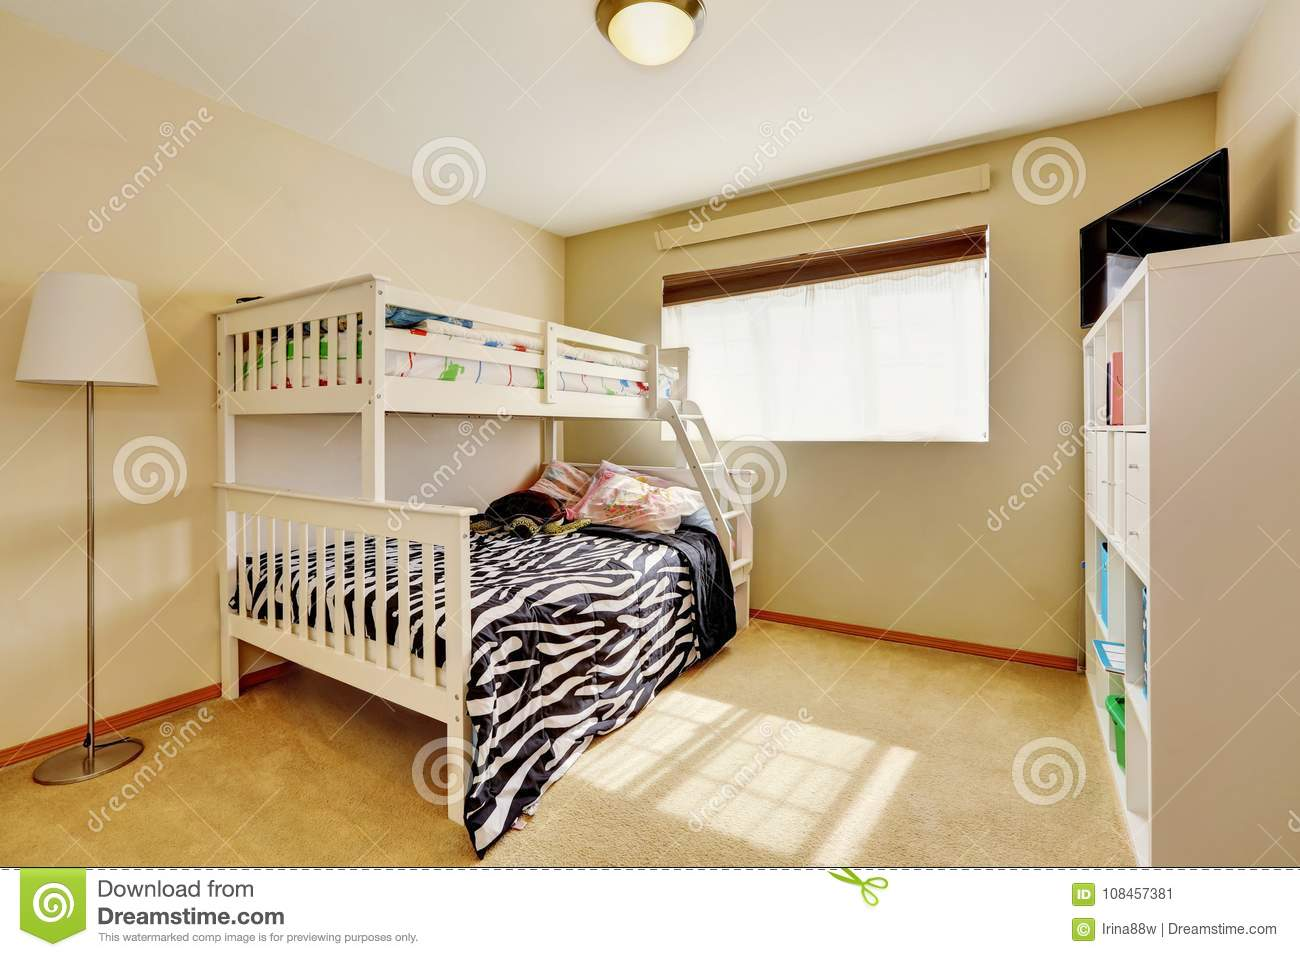 Sunny Beige Kids Room With Bunk Bed Stock Image Image Of Free